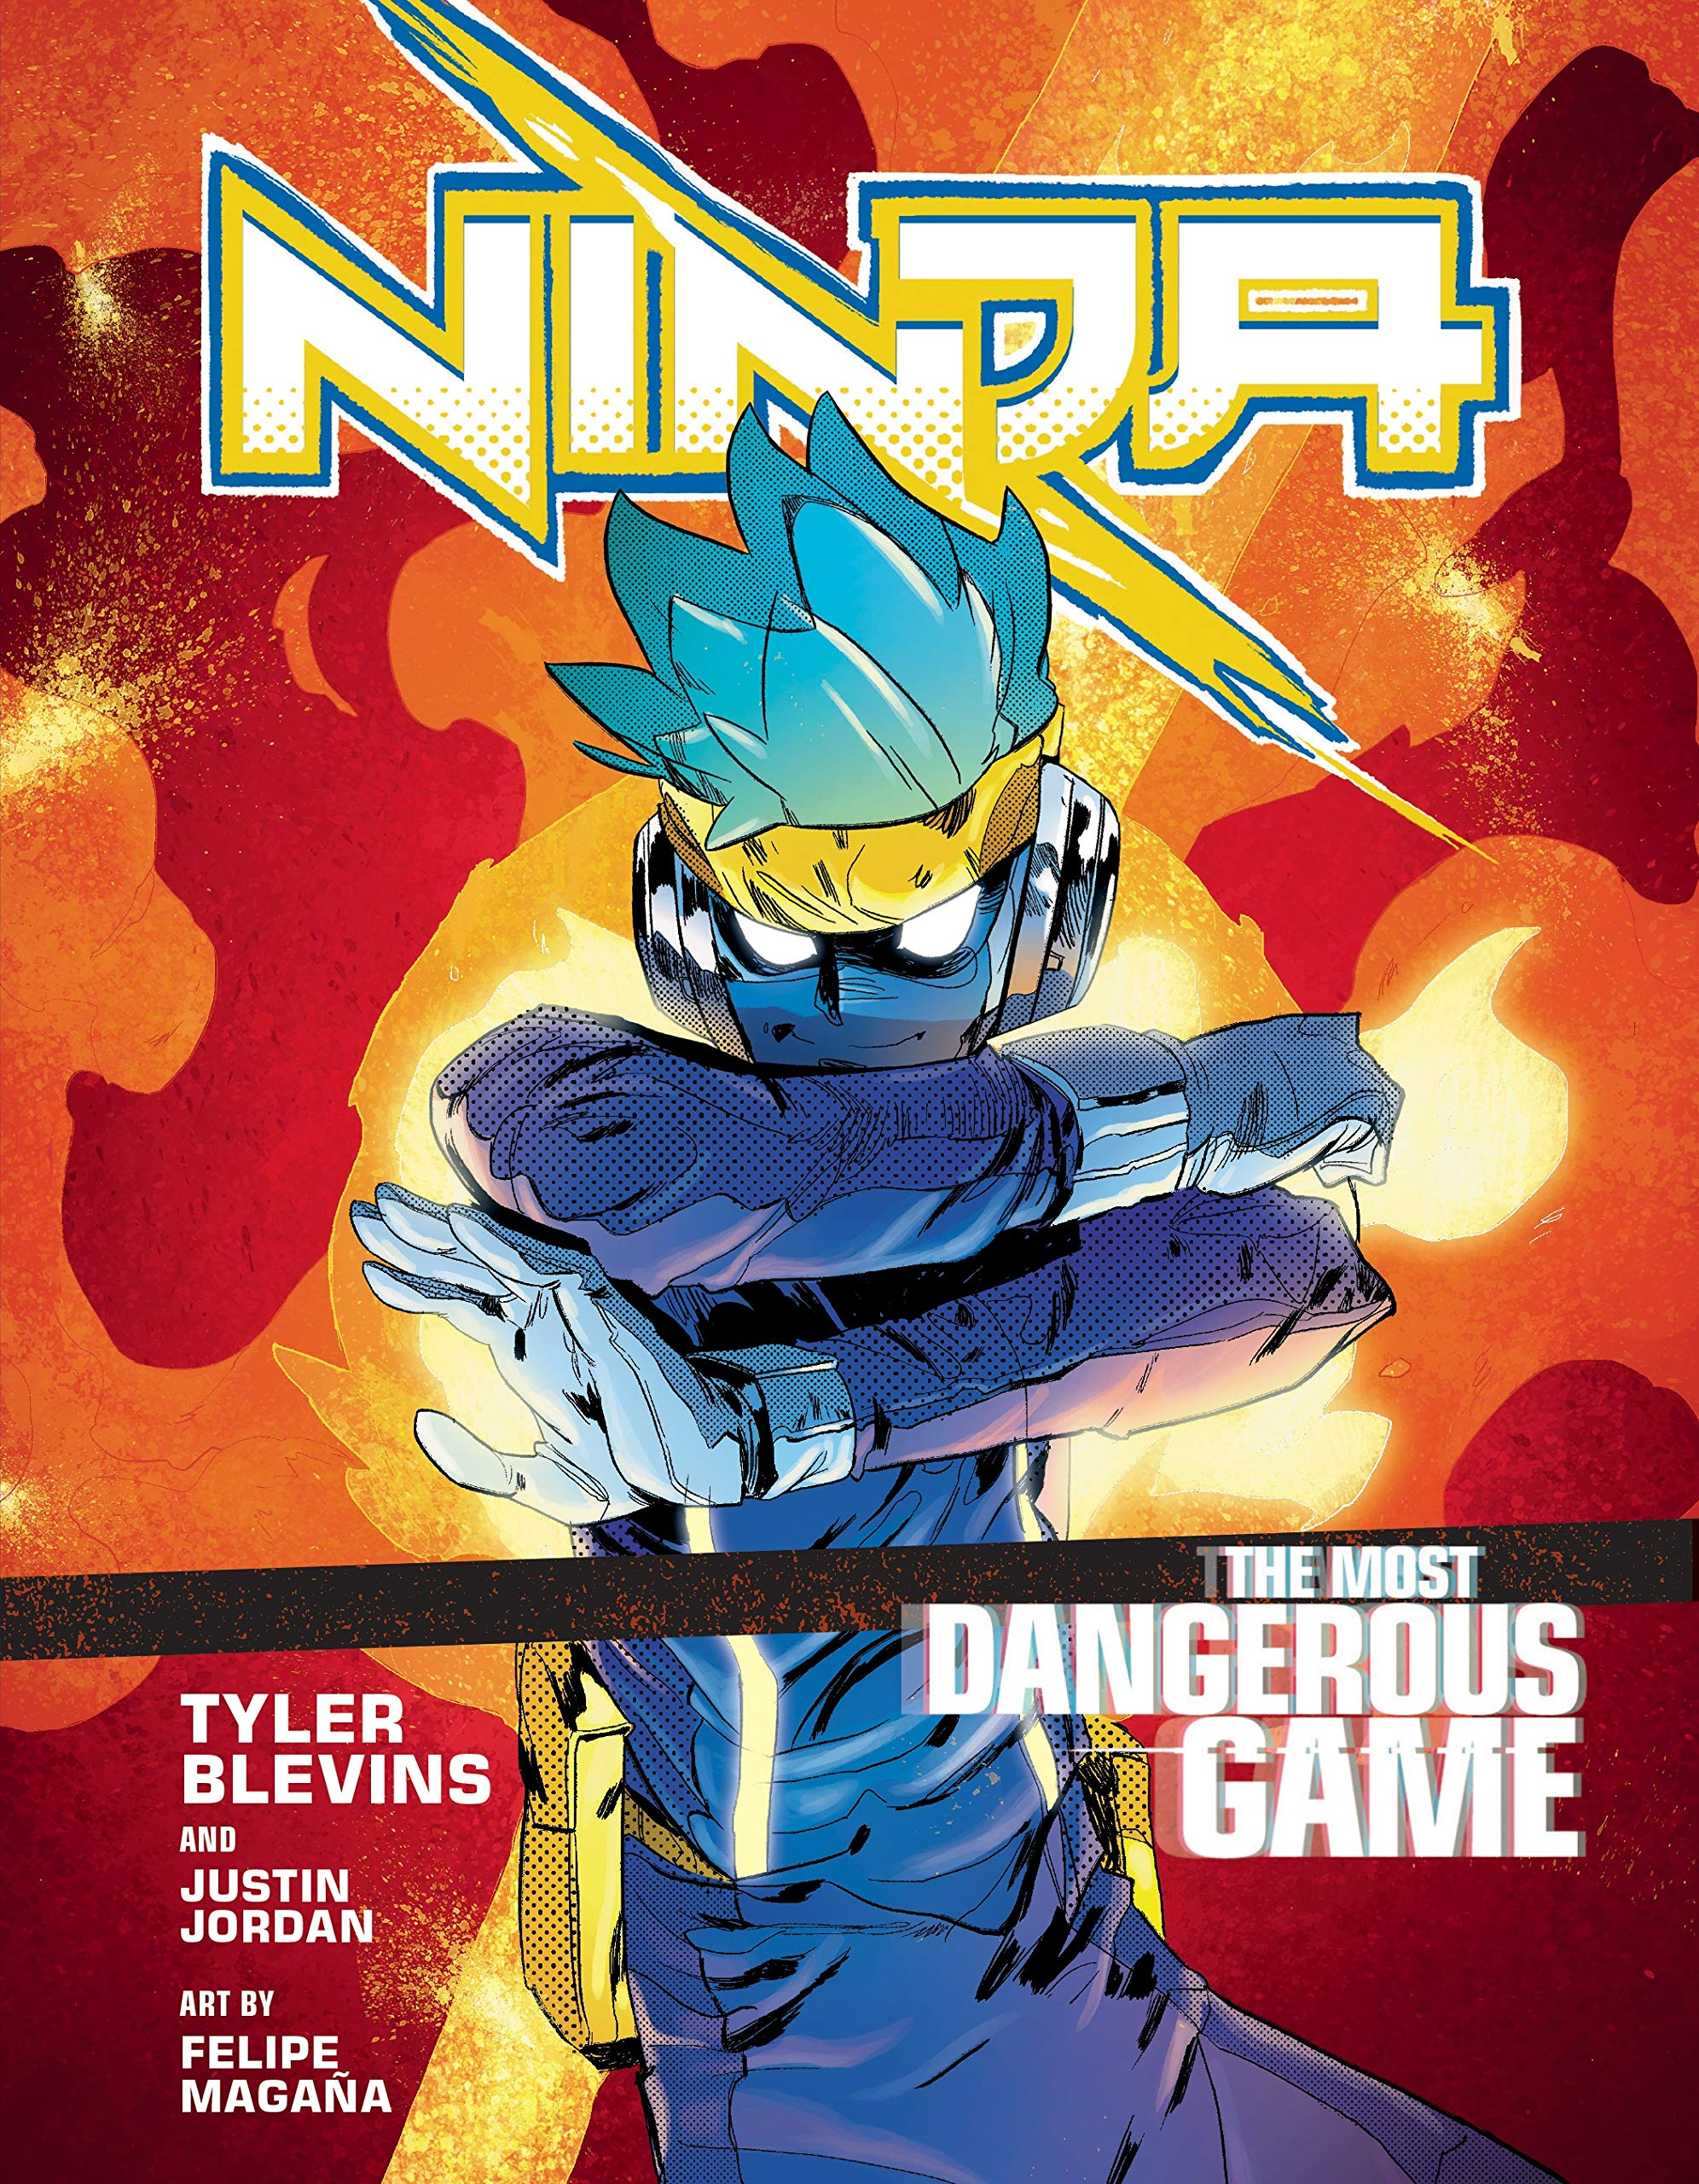 Ninja. The Most Dangerous Game A Graphic Novel: Amazon.es ...